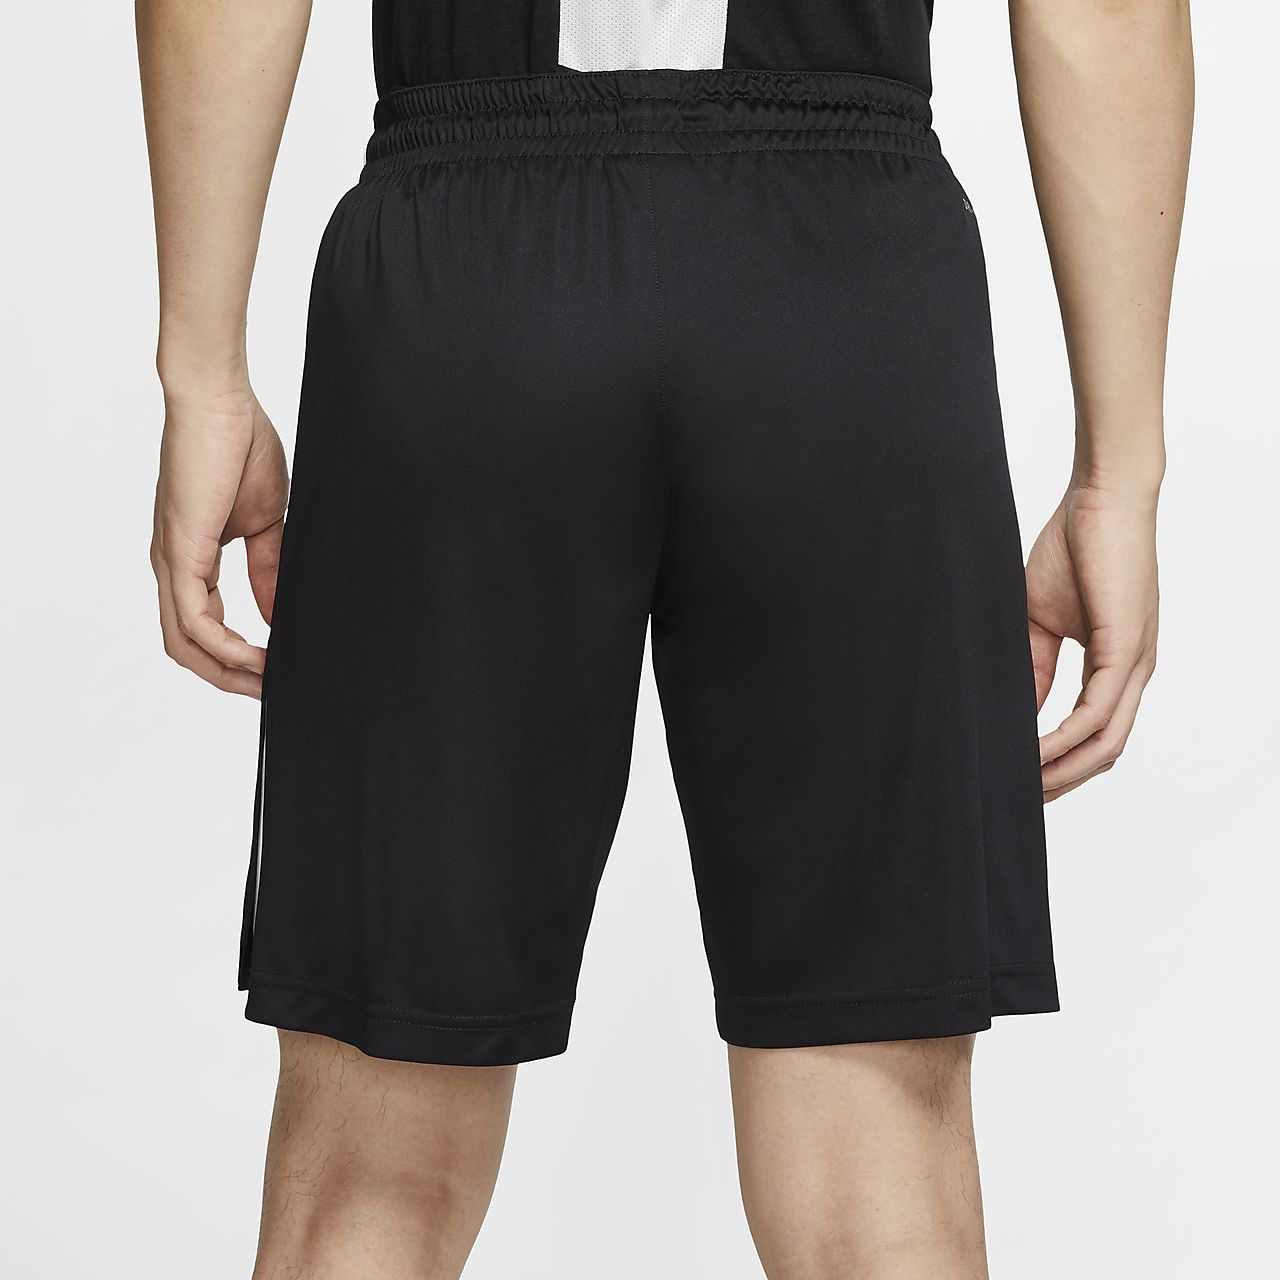 c5d4df64ced Jordan Dri-FIT 23 Alpha Men's Training Shorts. Nike.com